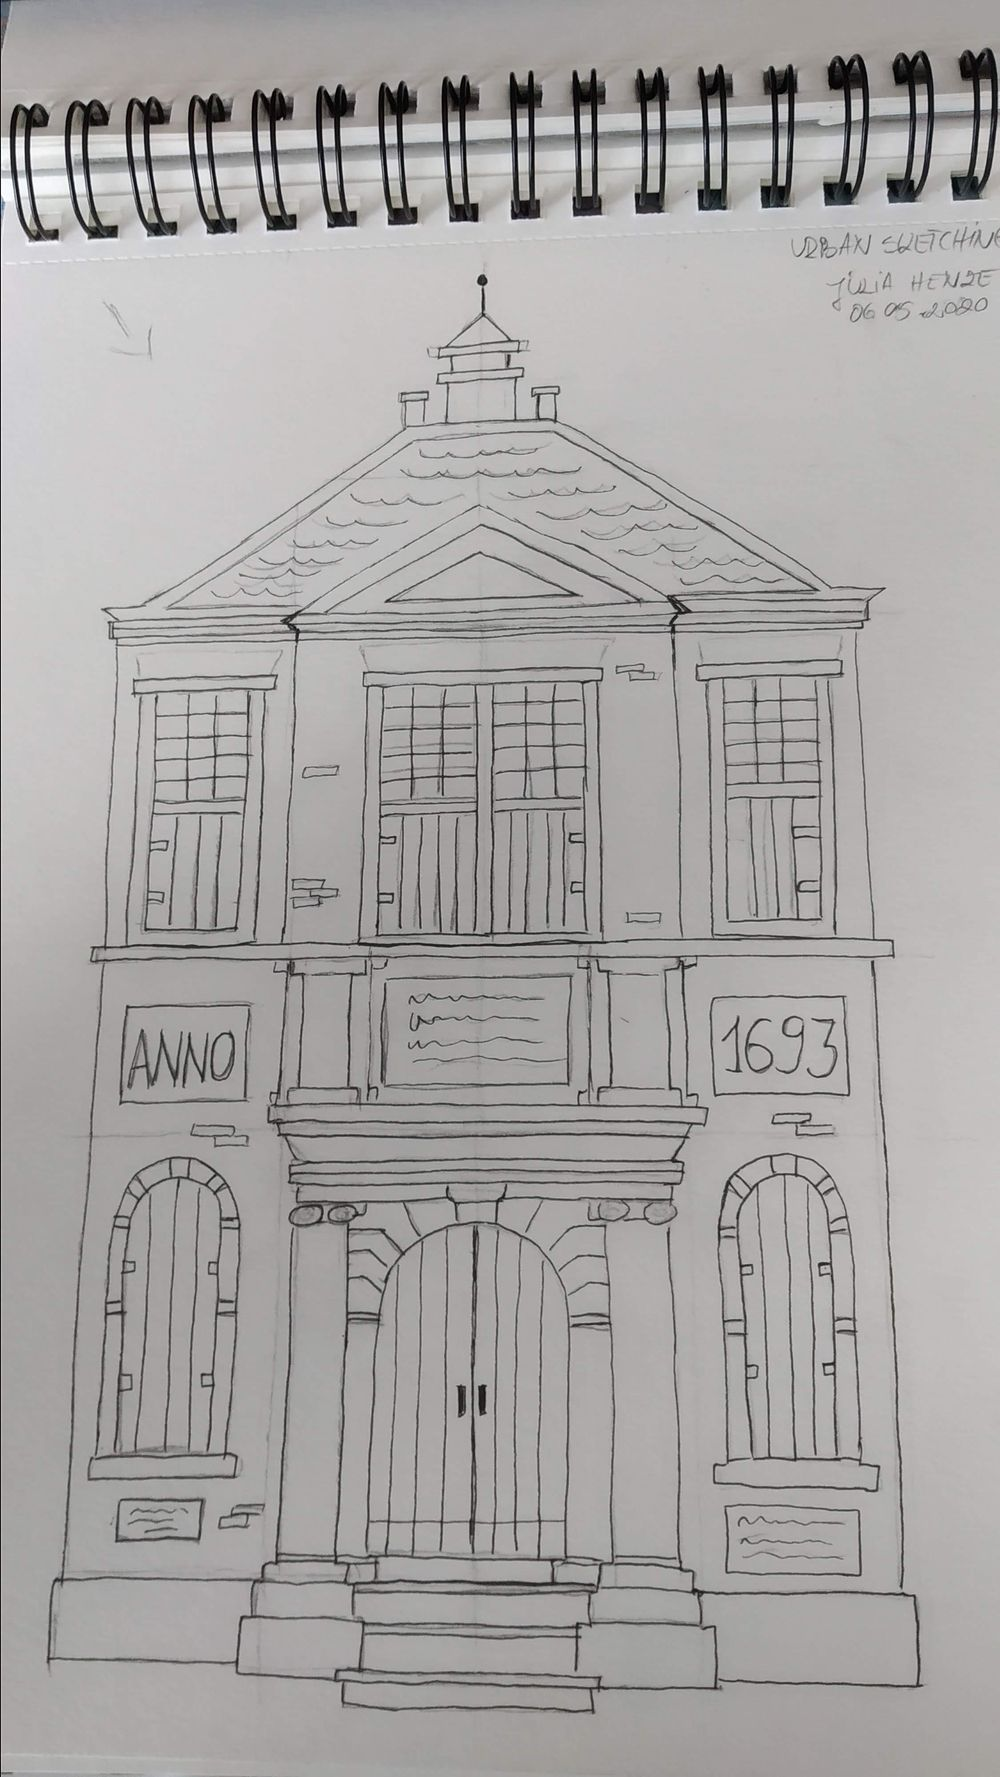 Urban Sketching - image 3 - student project